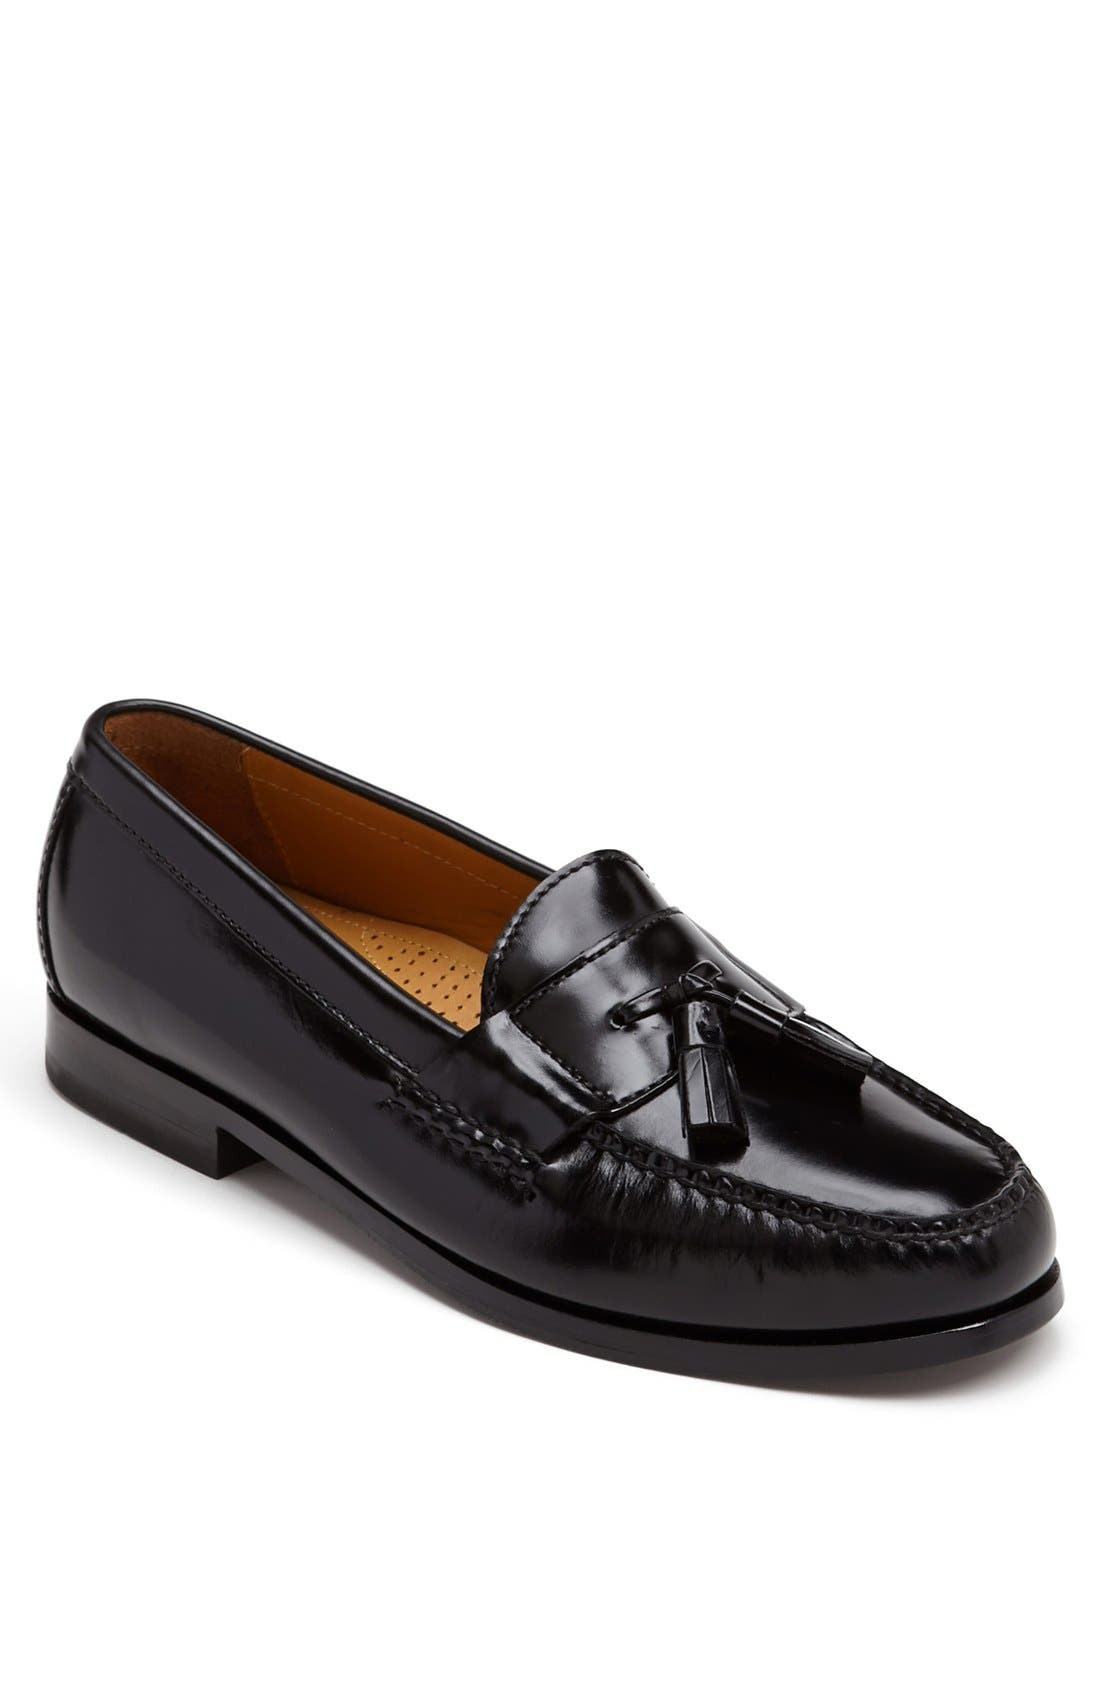 Alternate Image 1 Selected - Cole Haan 'Pinch Air Tassel' Loafer (Online Only)   (Men)